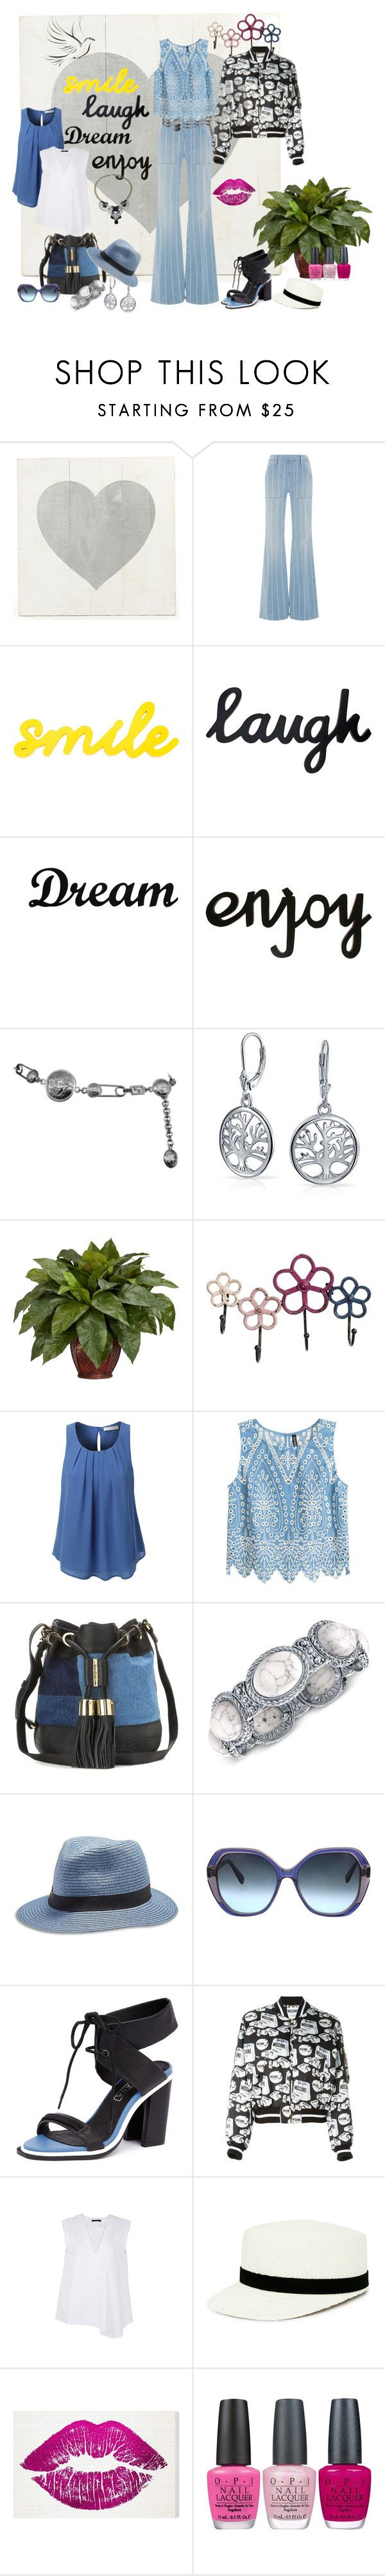 """High Waisted Striped Jeans, Hot Trend Silk Graphic Bomber Jacket, Pattern Mixing and More!"" by angelonboard ❤ liked on Polyvore featuring Frame Denim, Dot & Bo, Versace, Bling Jewelry, Nearly Natural, LE3NO, See by Chloé, 2028, Lucky Brand and Oscar de la Renta"